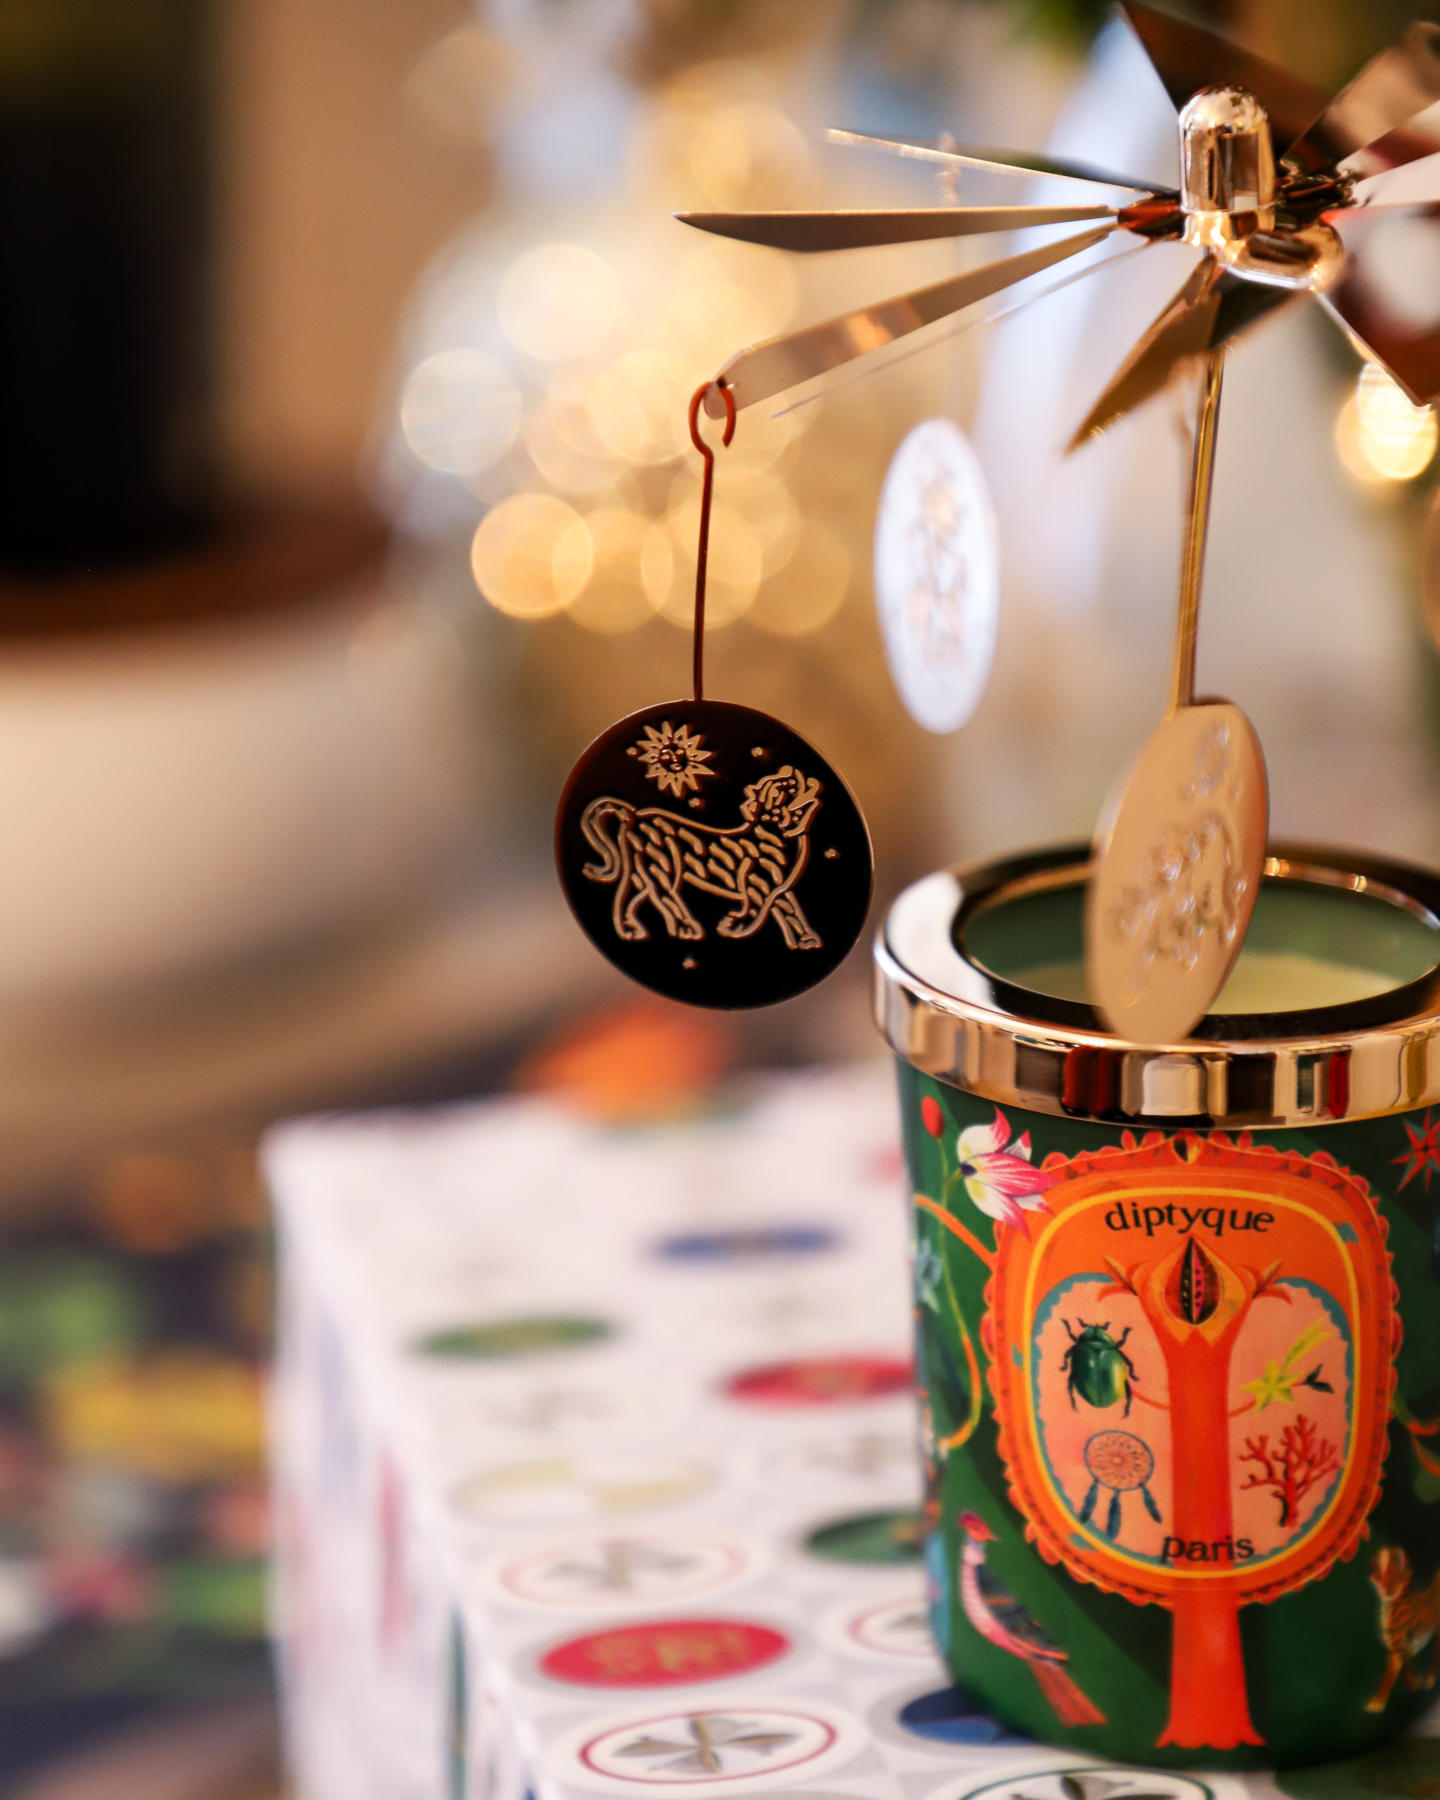 Diptyque Limited Edition Winter Collection Lucky Charms Caroline Hirons